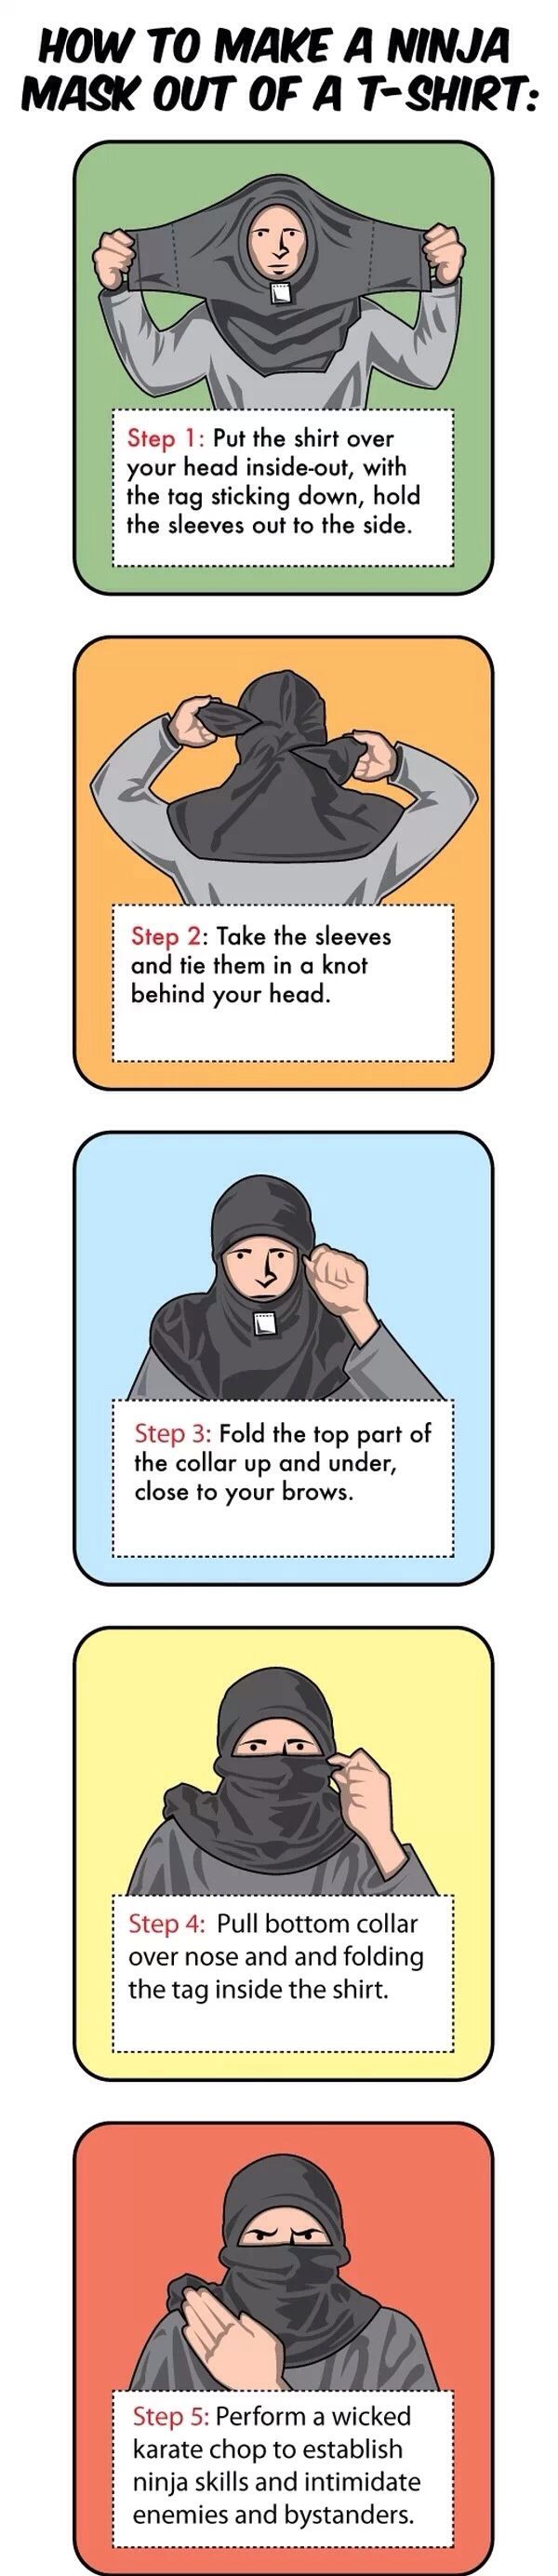 How to make a ninja mask!